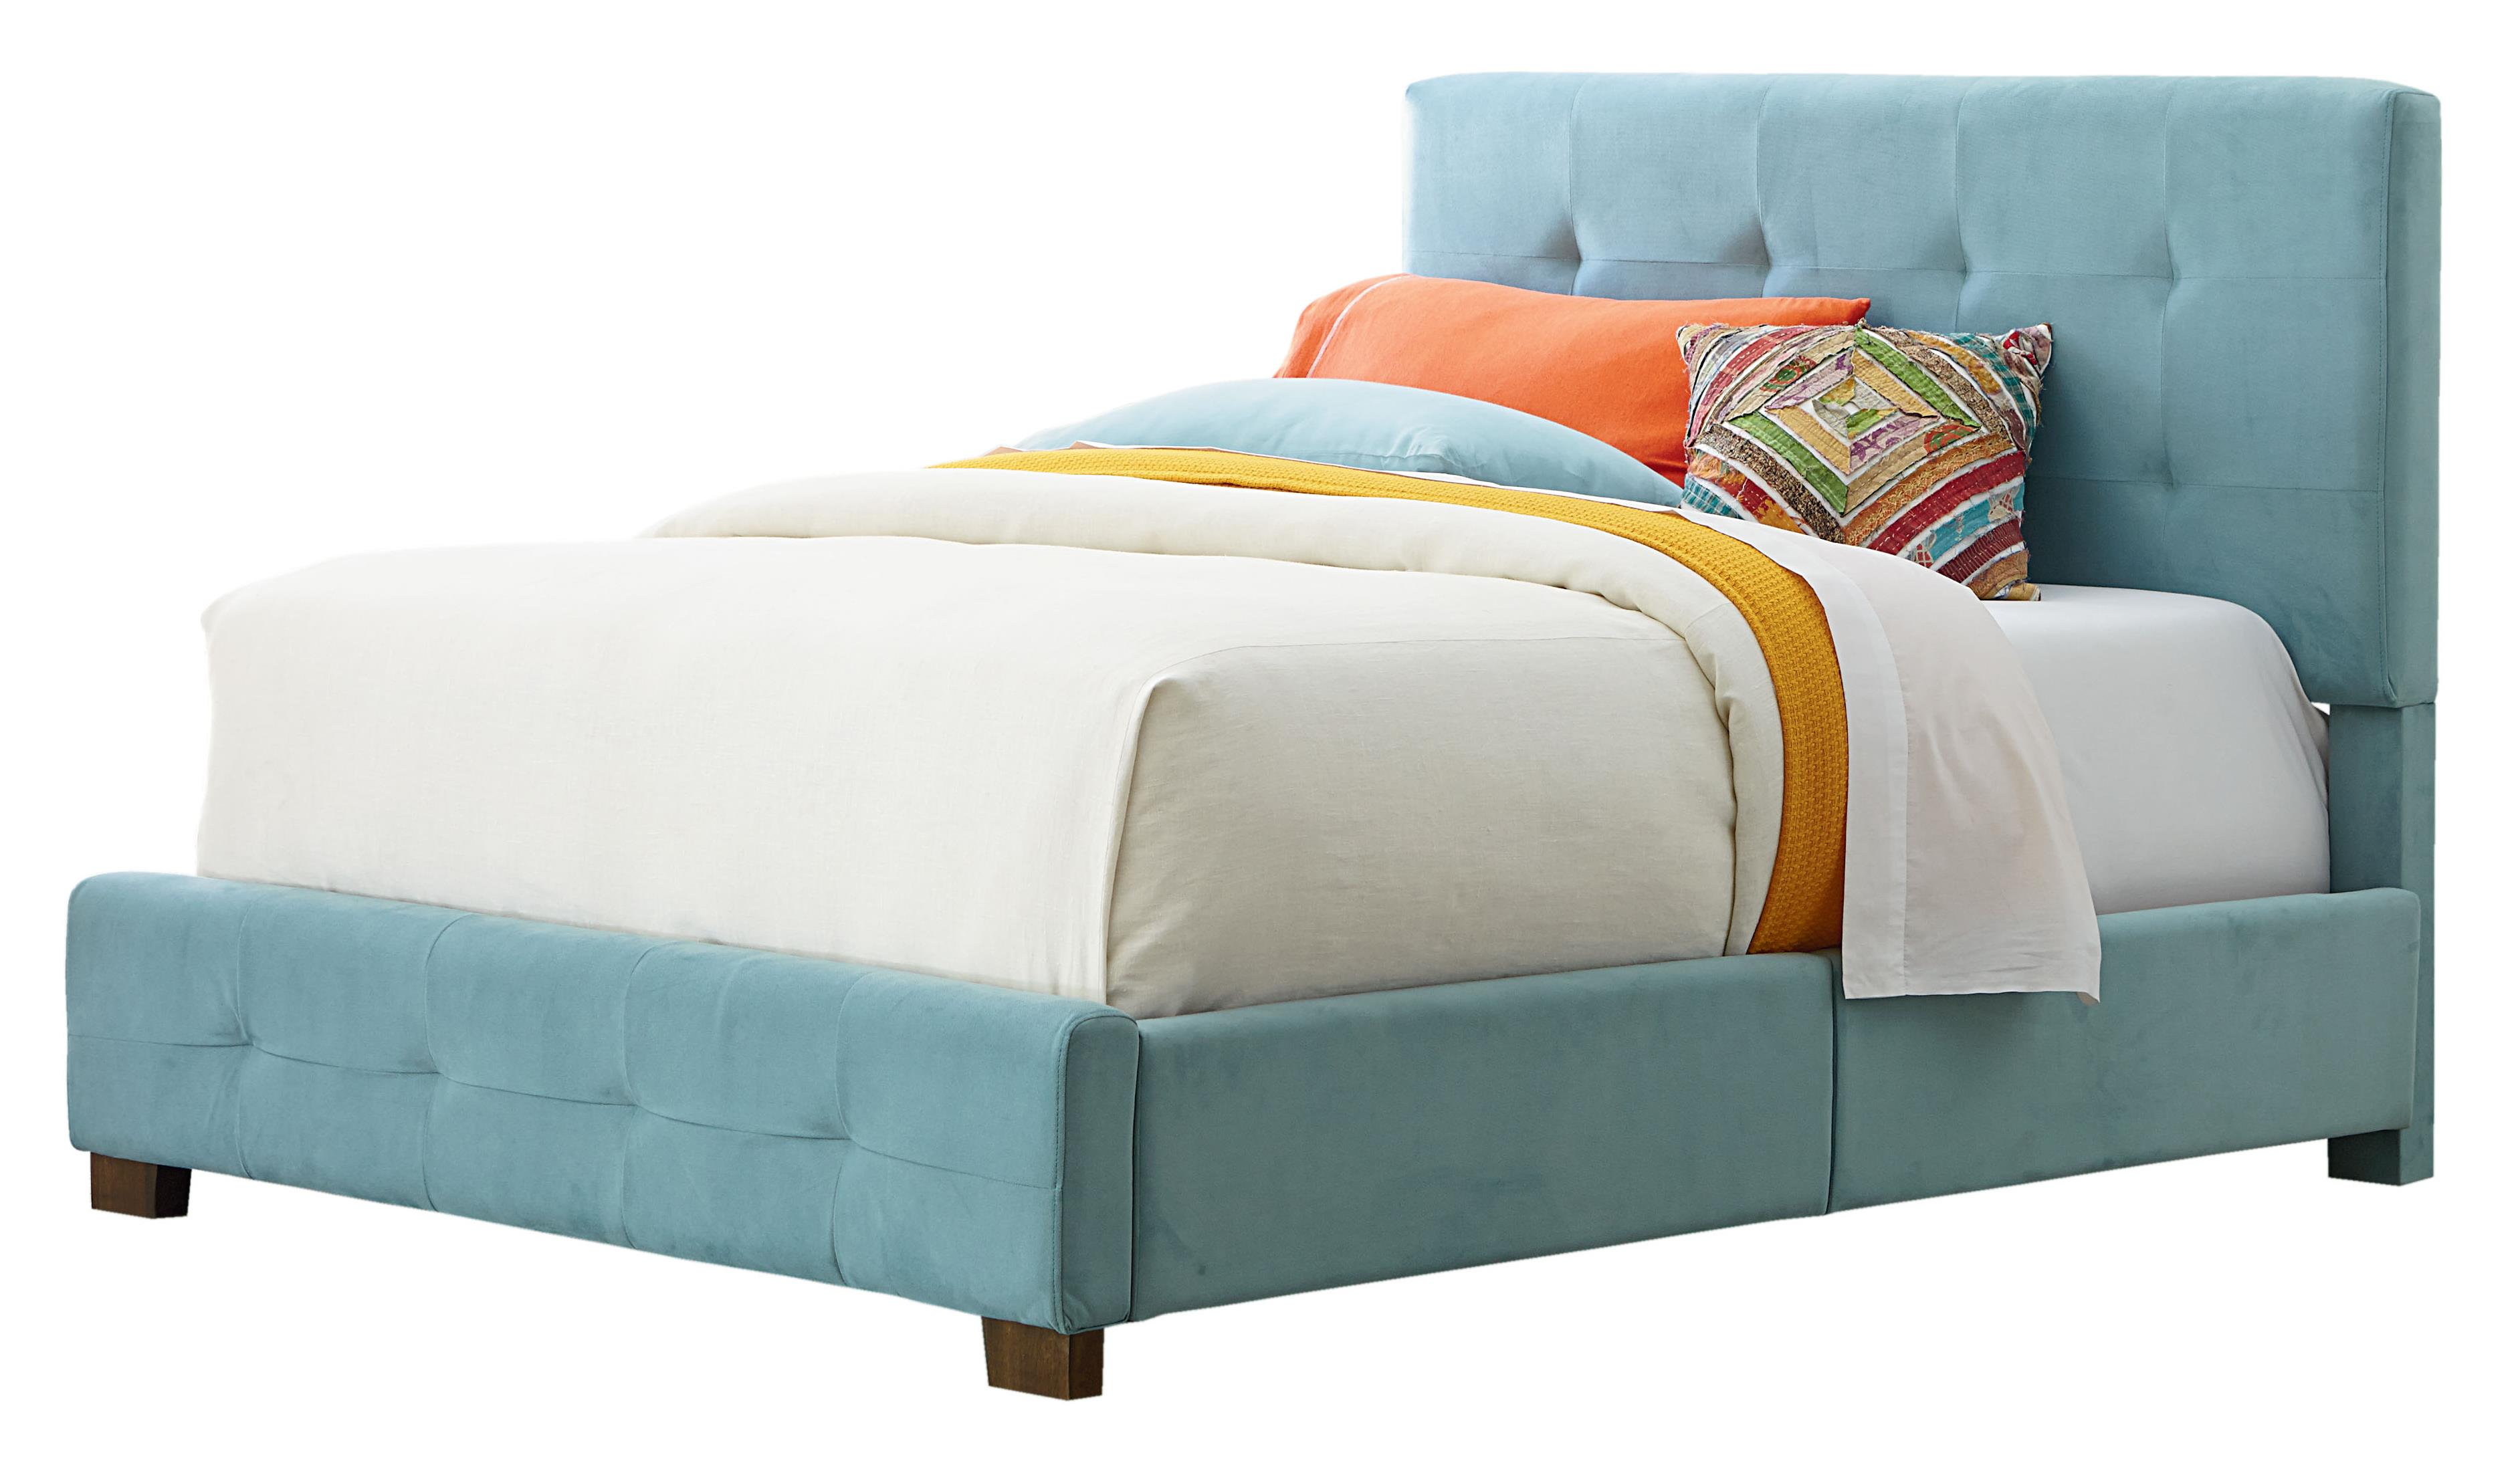 Standard Furniture Madison Full Upholstered Bed with Short Wood Legs - Item Number: 99211